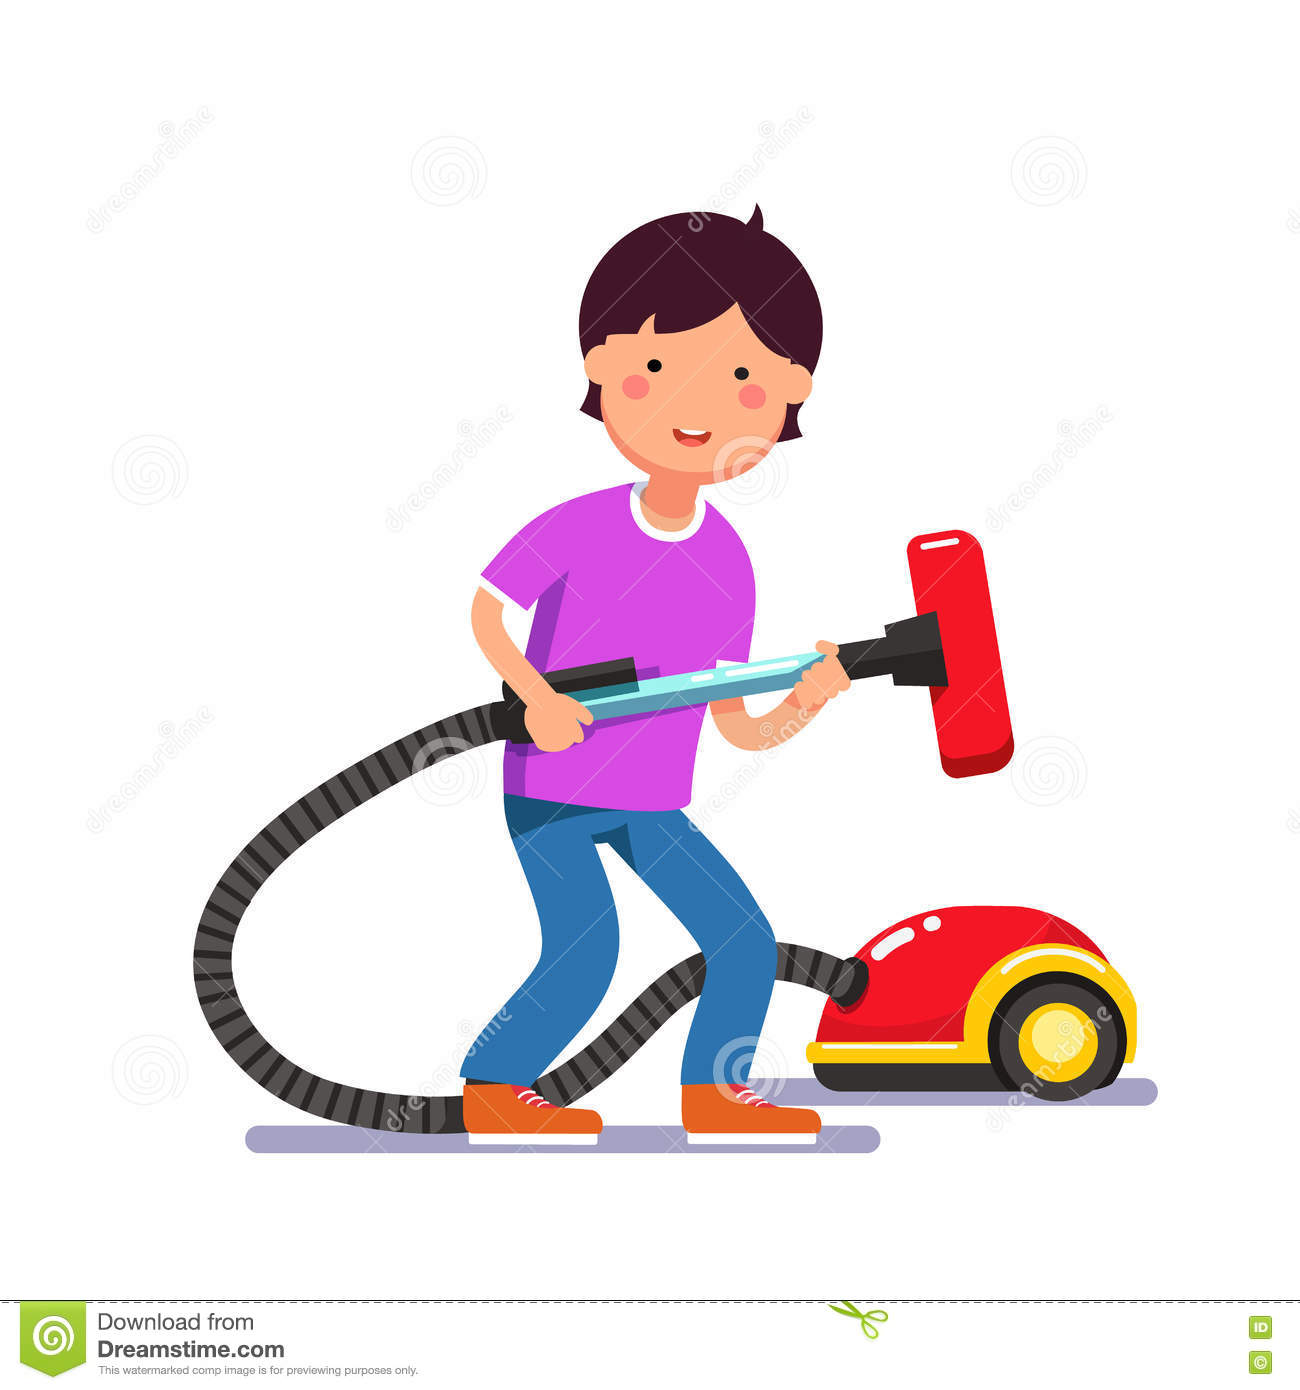 Vacuum cleaner clipart vacuum cleaner clip art - Boy Cartoon Cleaner Cleaning Electric Flat Holding Illustration Kid Pipe Vacuum